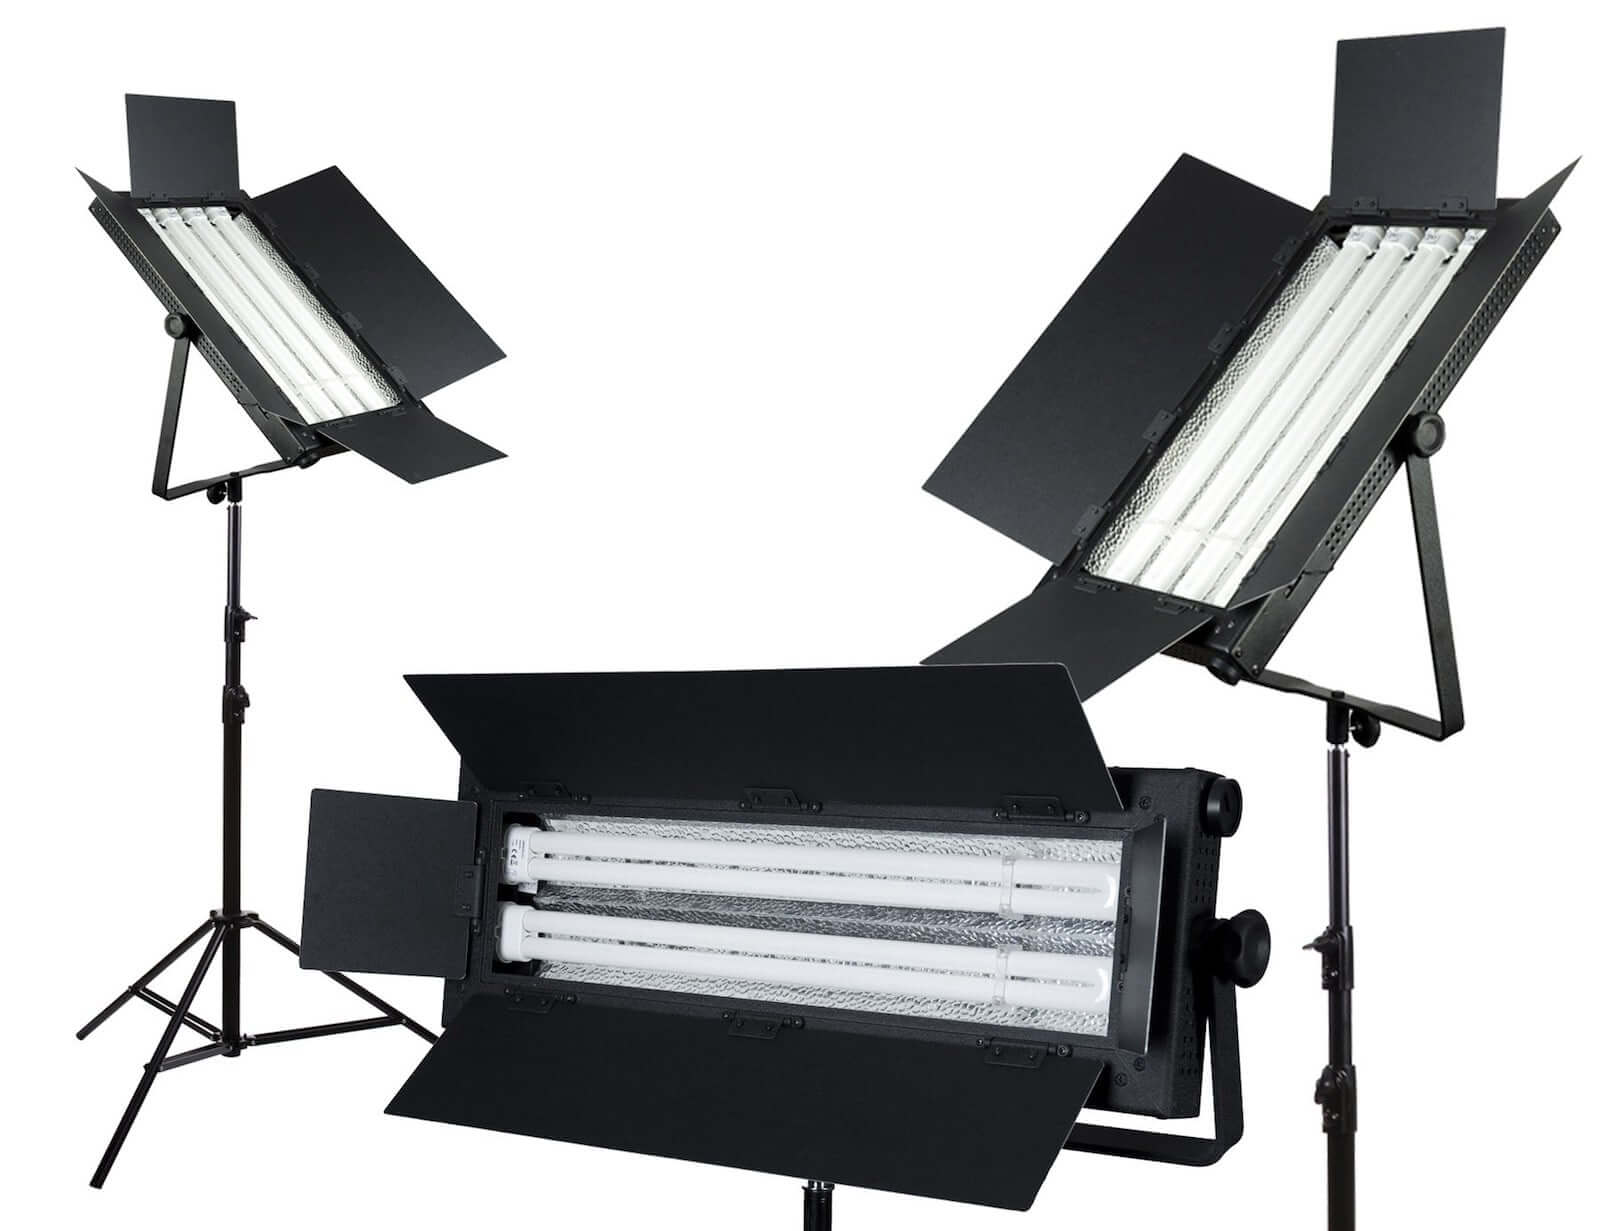 Best Video Lighting Kits - Production Lighting - Fluorescent Film Lights  sc 1 st  StudioBinder & Production Lighting: The Best Video Lighting Kits for Filmmakers